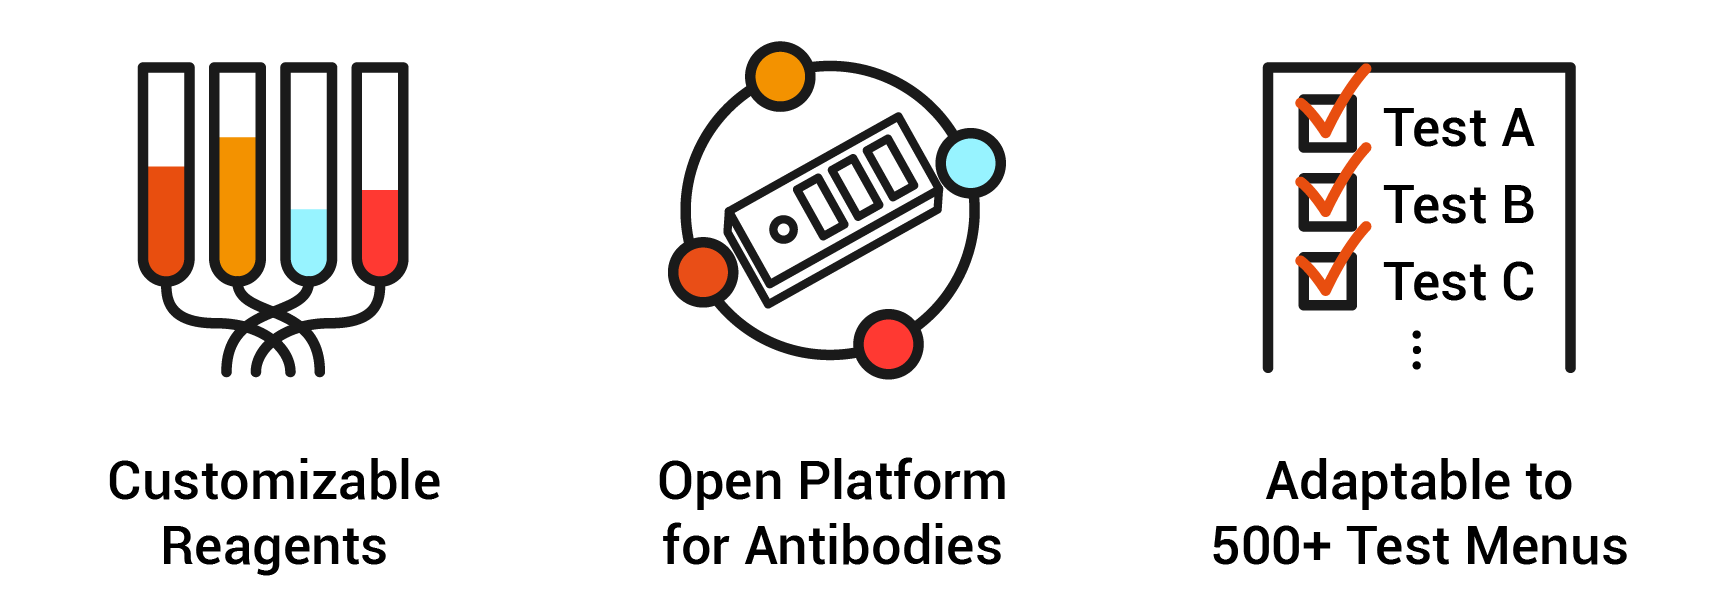 icons_web_ngsi_2.png